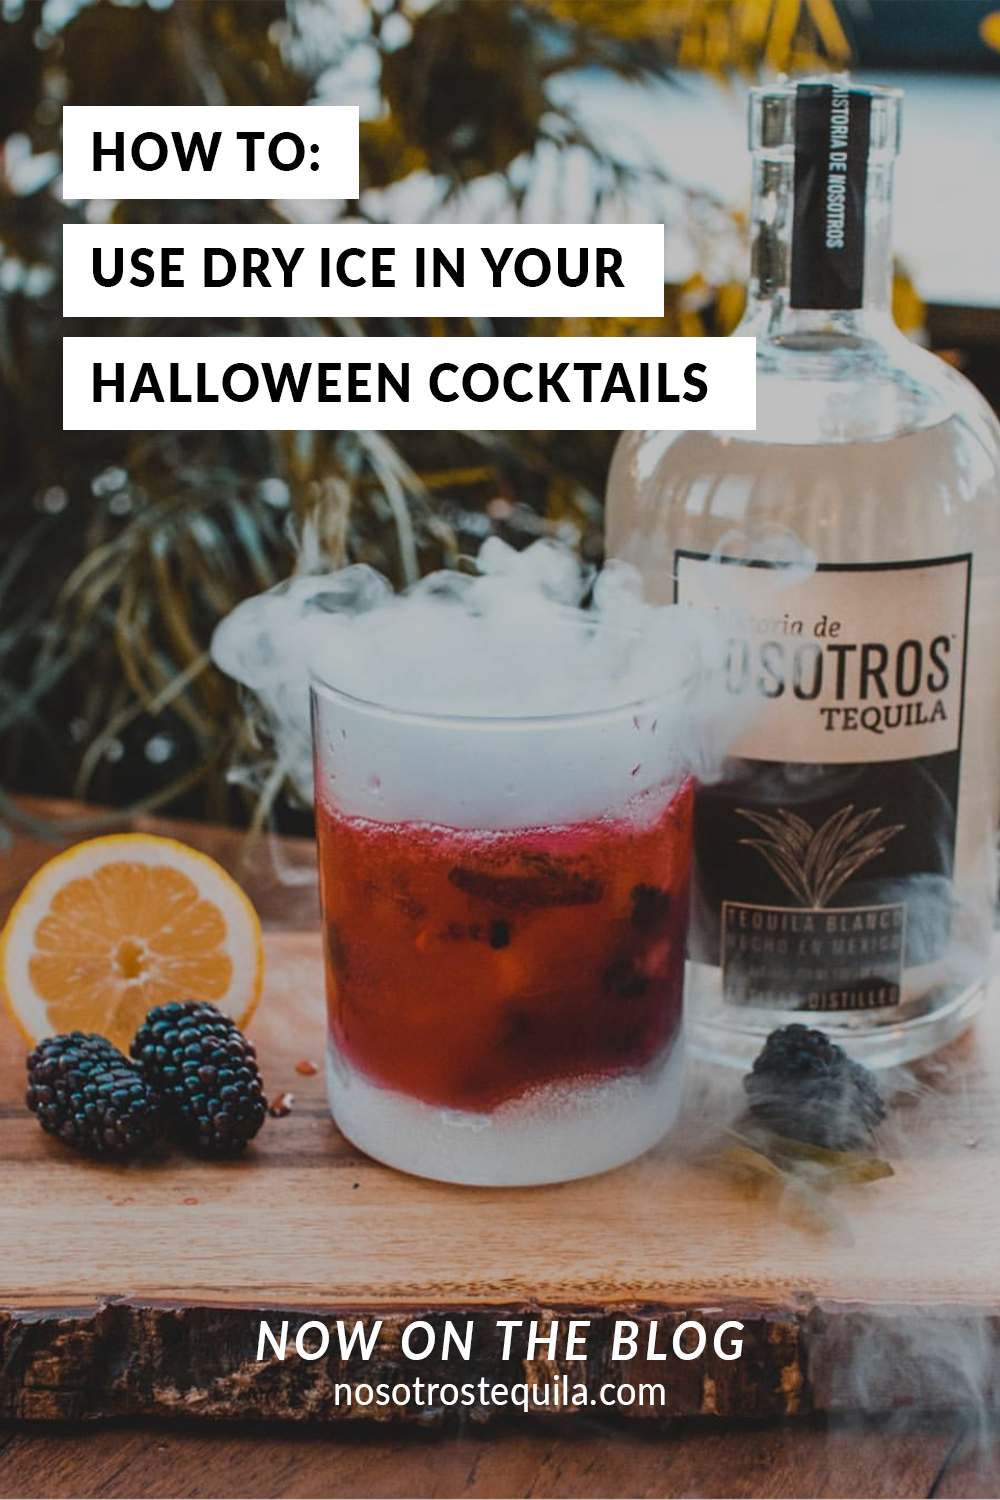 How To Use Dry Ice In Your Halloween Cocktails Nosotros Tequila Halloween Cocktails Dry Ice Cocktails Dry Ice